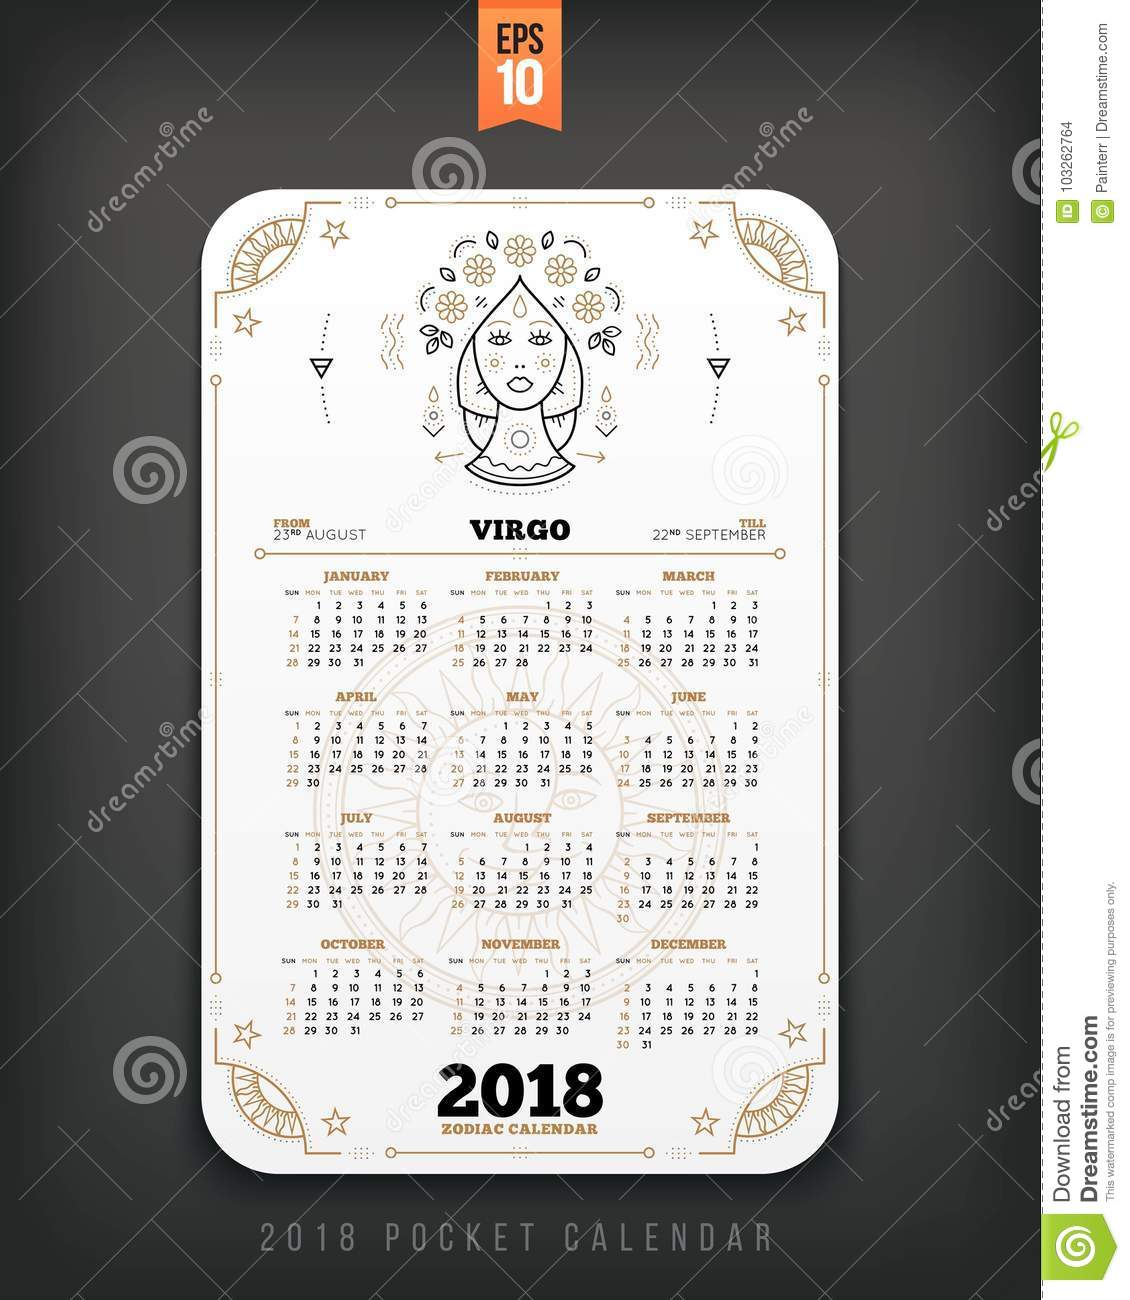 virgo 2018 year zodiac calendar pocket size vertical layout